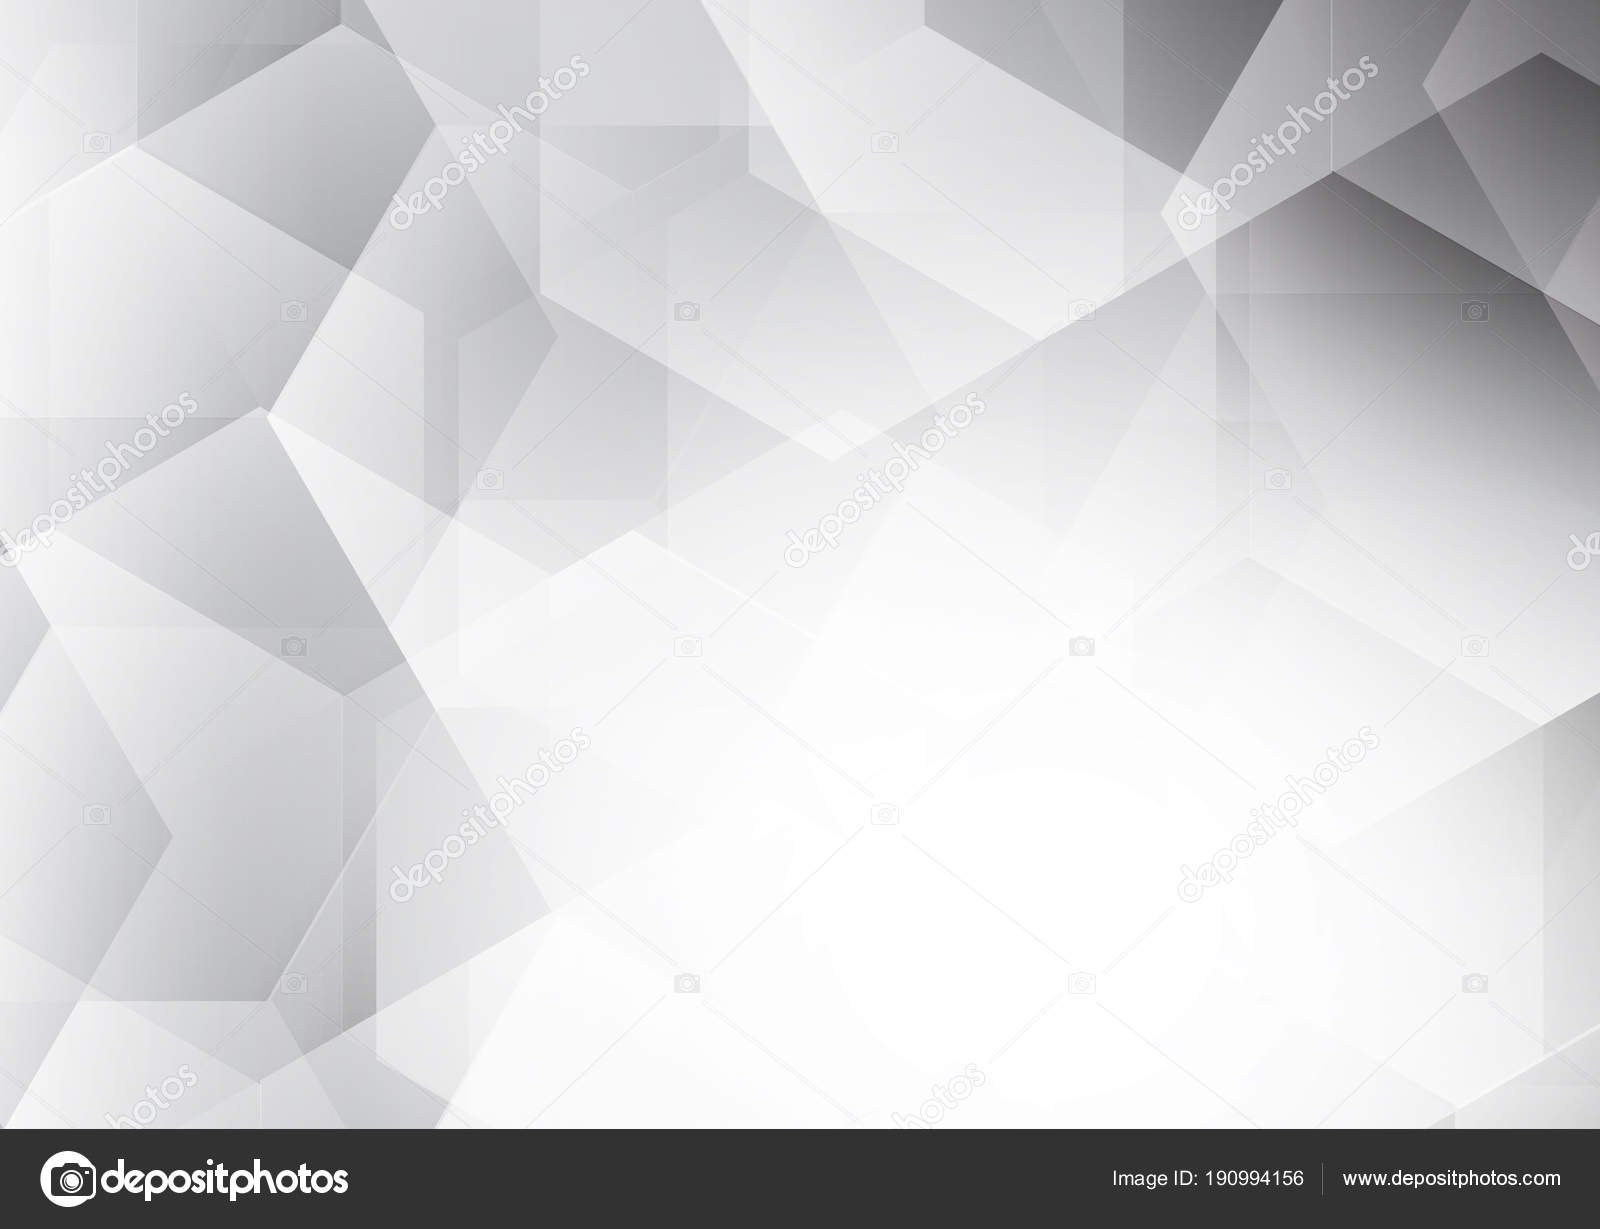 Fond Abstract Vector Polygone Futuriste Moderne Couleur Blanc Gris